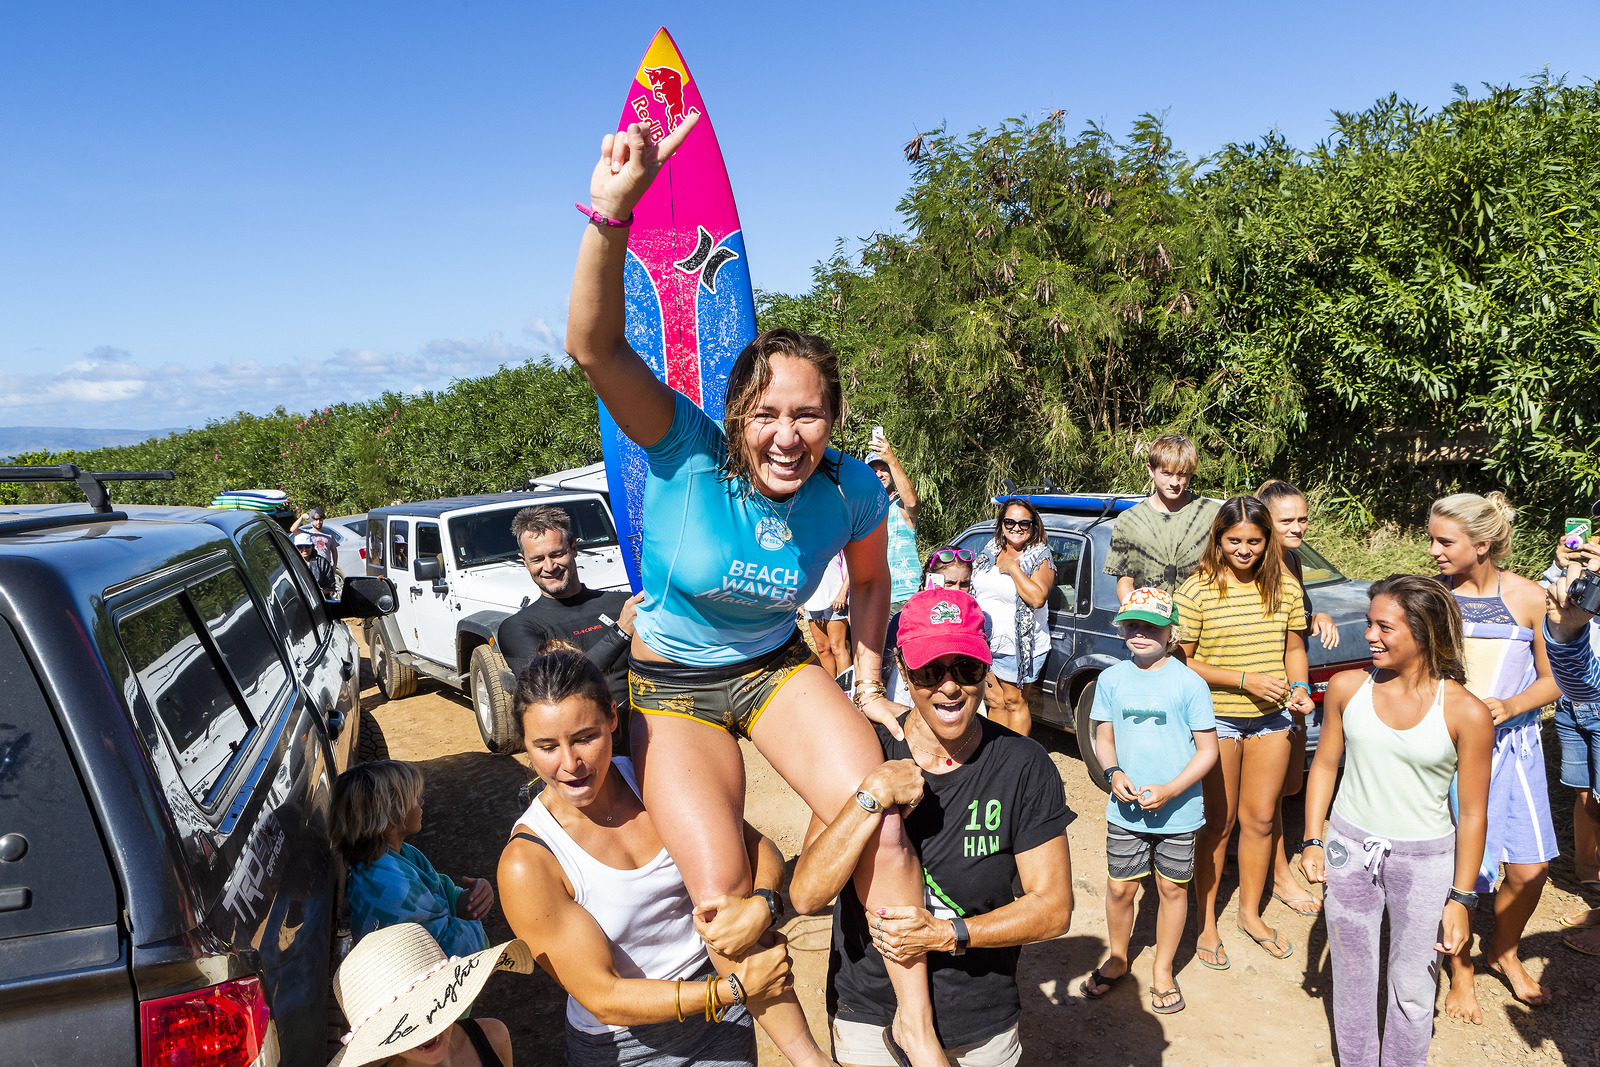 Carissa Moore Wins Beachwaver Maui Pro with Perfect 10